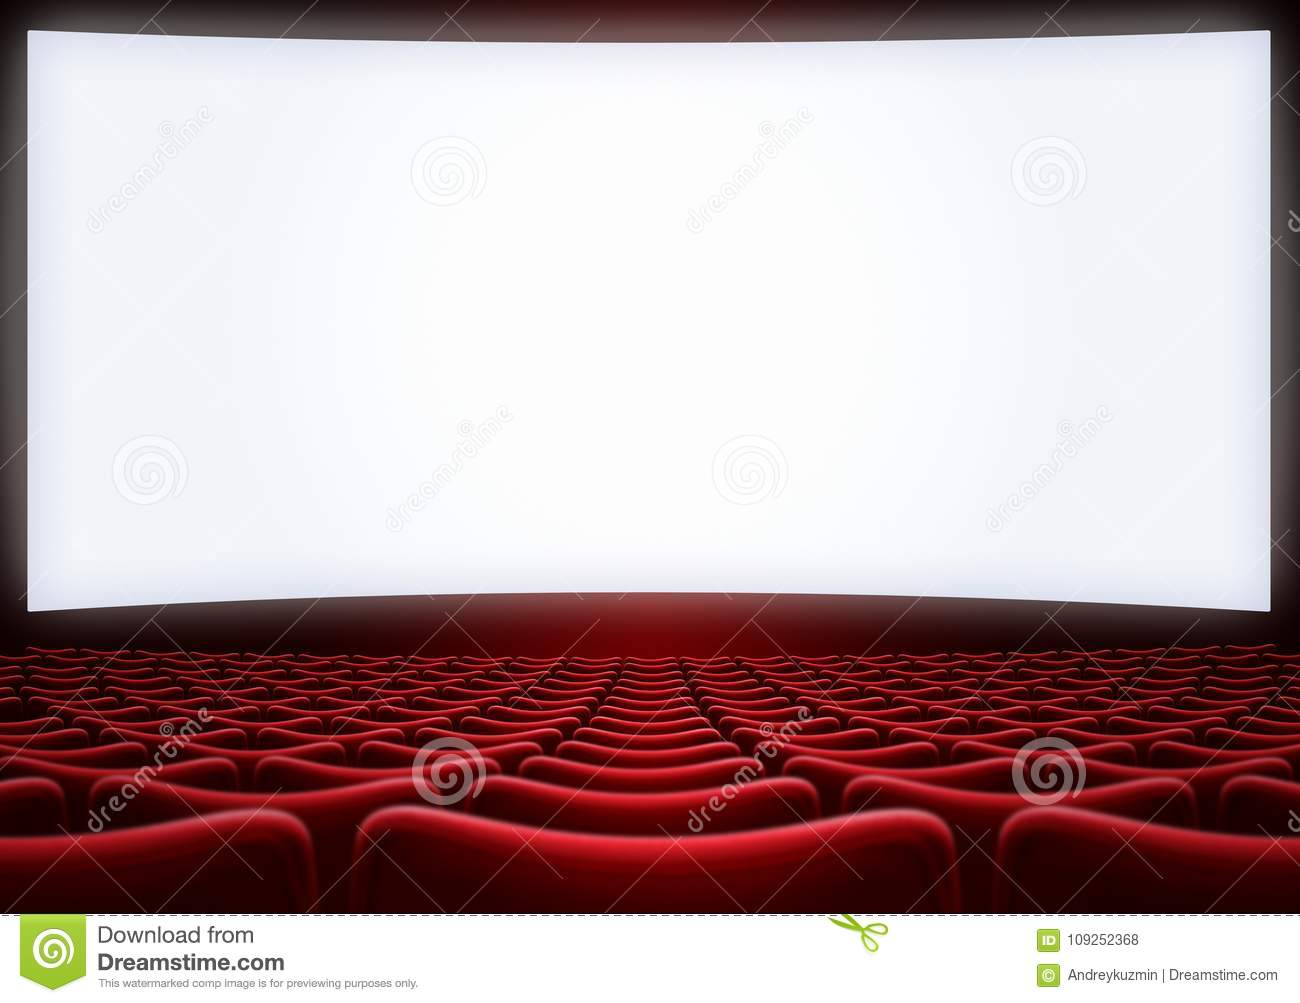 Picture of: Movie Theater Screen With Red Seats 3d Illustration Stock Photo Image Of Movie Armchair 109252368